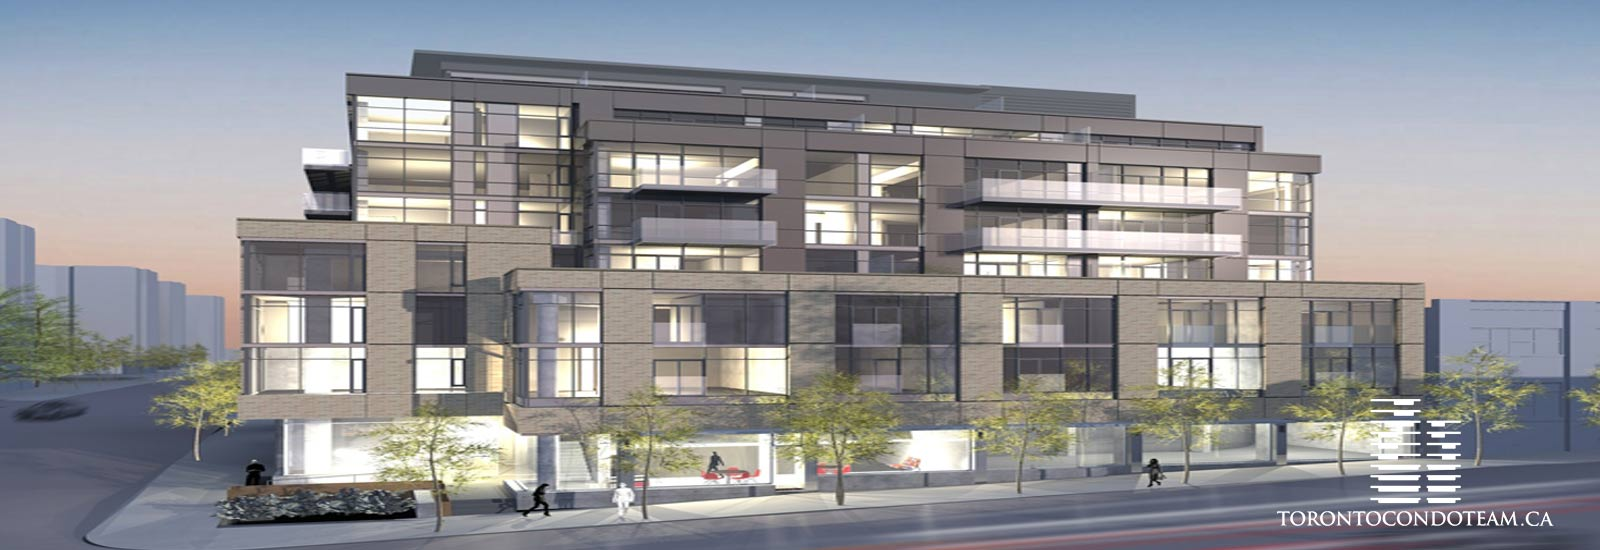 1205 Queen Street West Condos For Sale